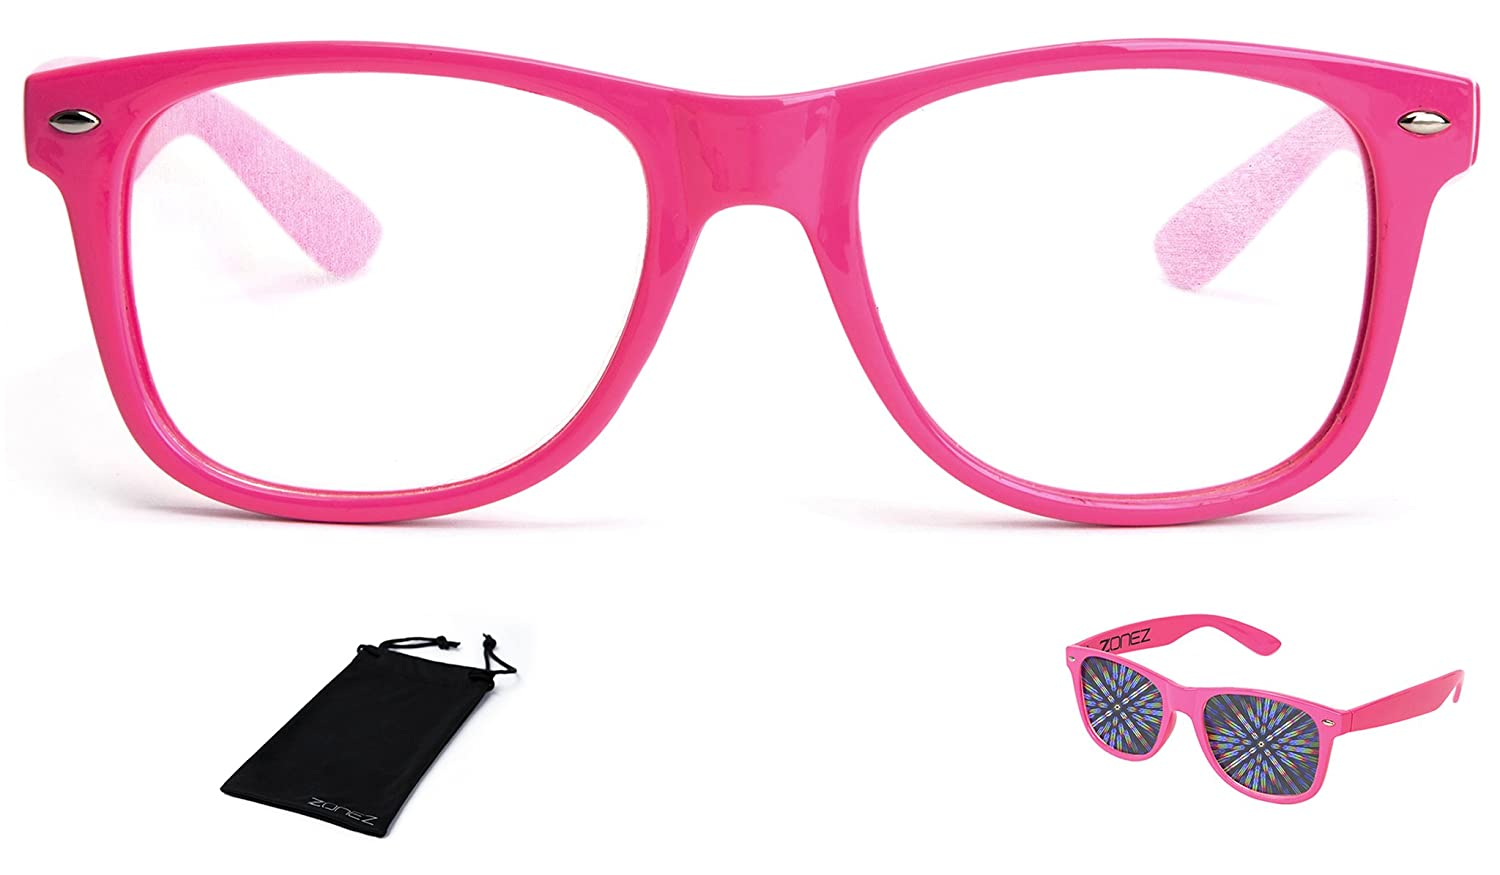 Zonez Premium Diffraction Glasses - Neon Color Options, High Quality Clear Lens with Glowing Holographic Rainbow Prism Effects - Rave Accessories, Light Shows, Party Favors